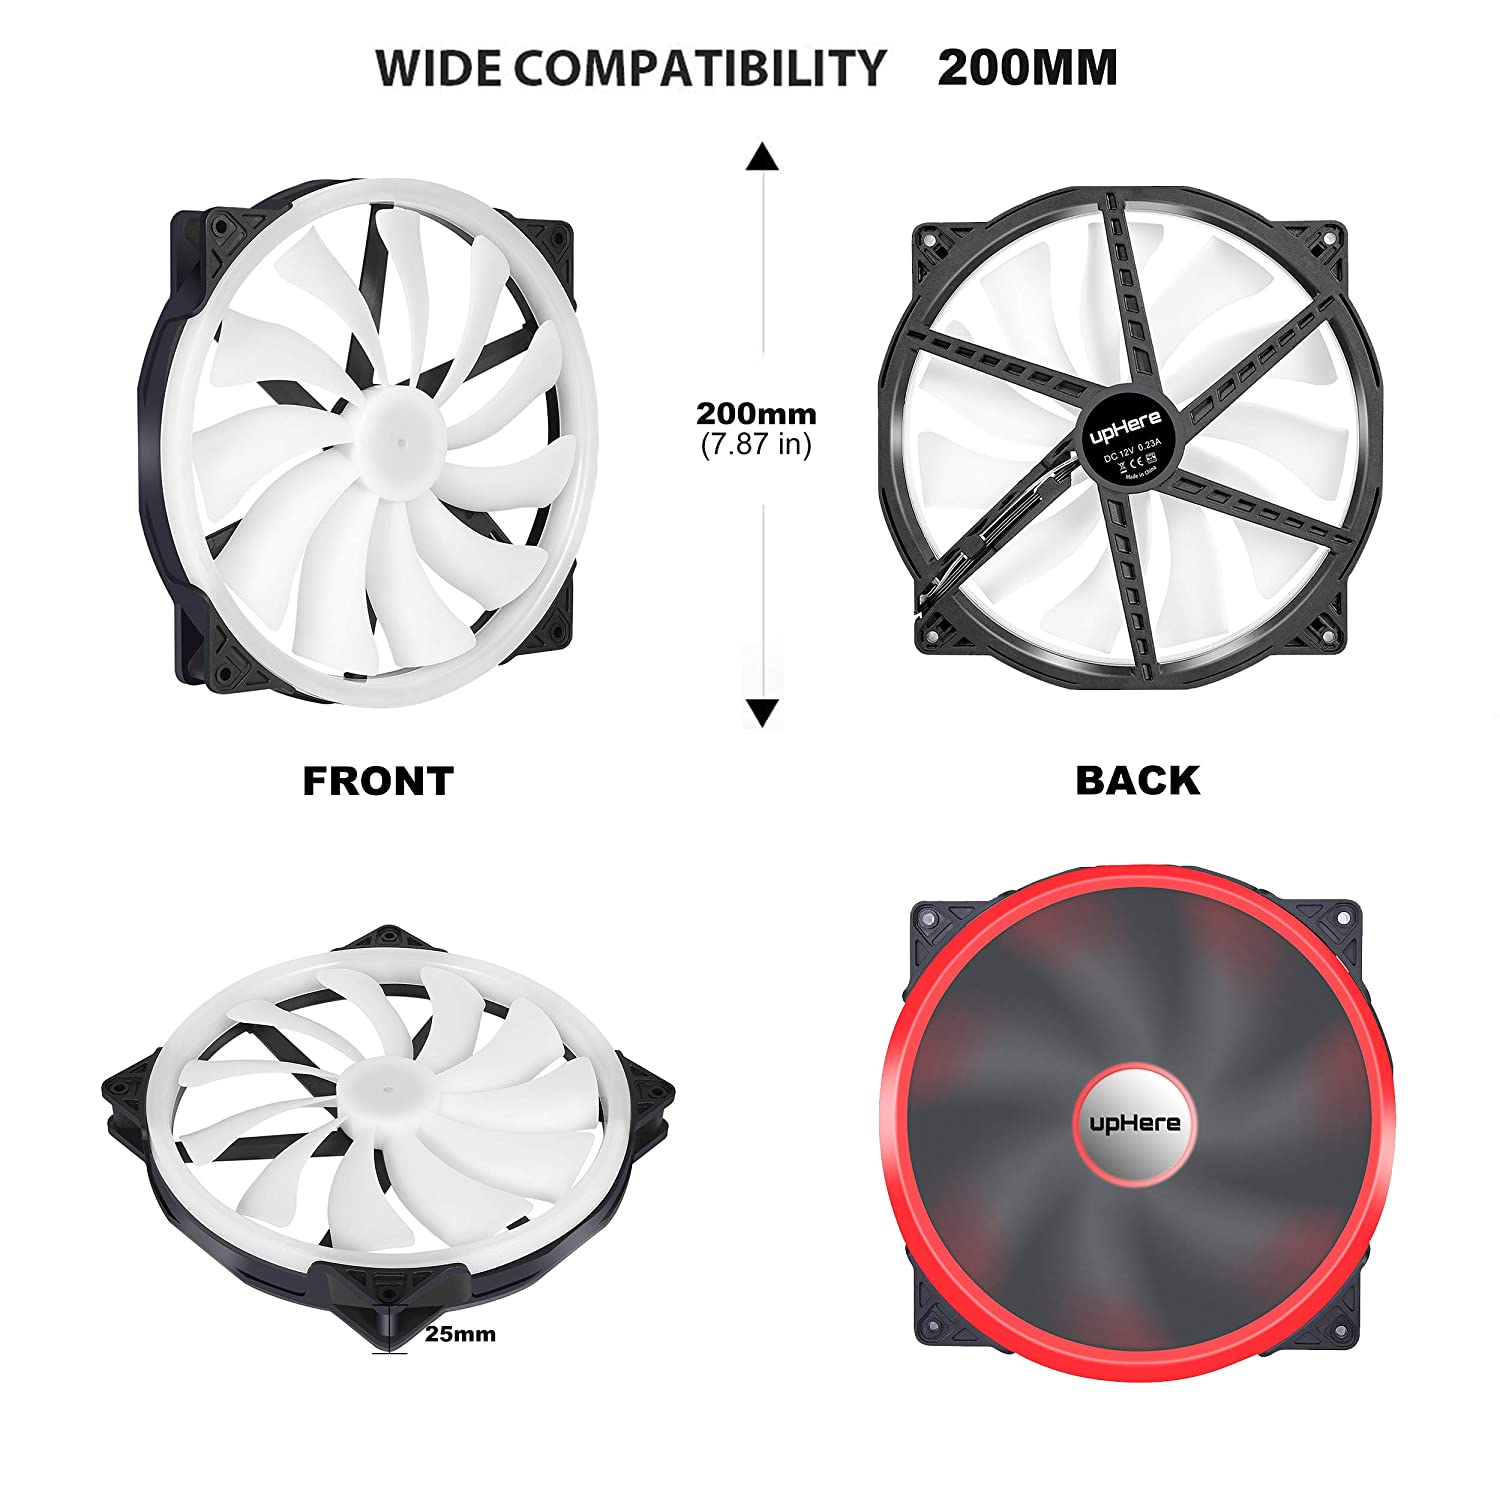 upHere P200RGB-Hydraulic Bearing 200mm 5V RGB PWM Fan for Computer Cases,P200RGB